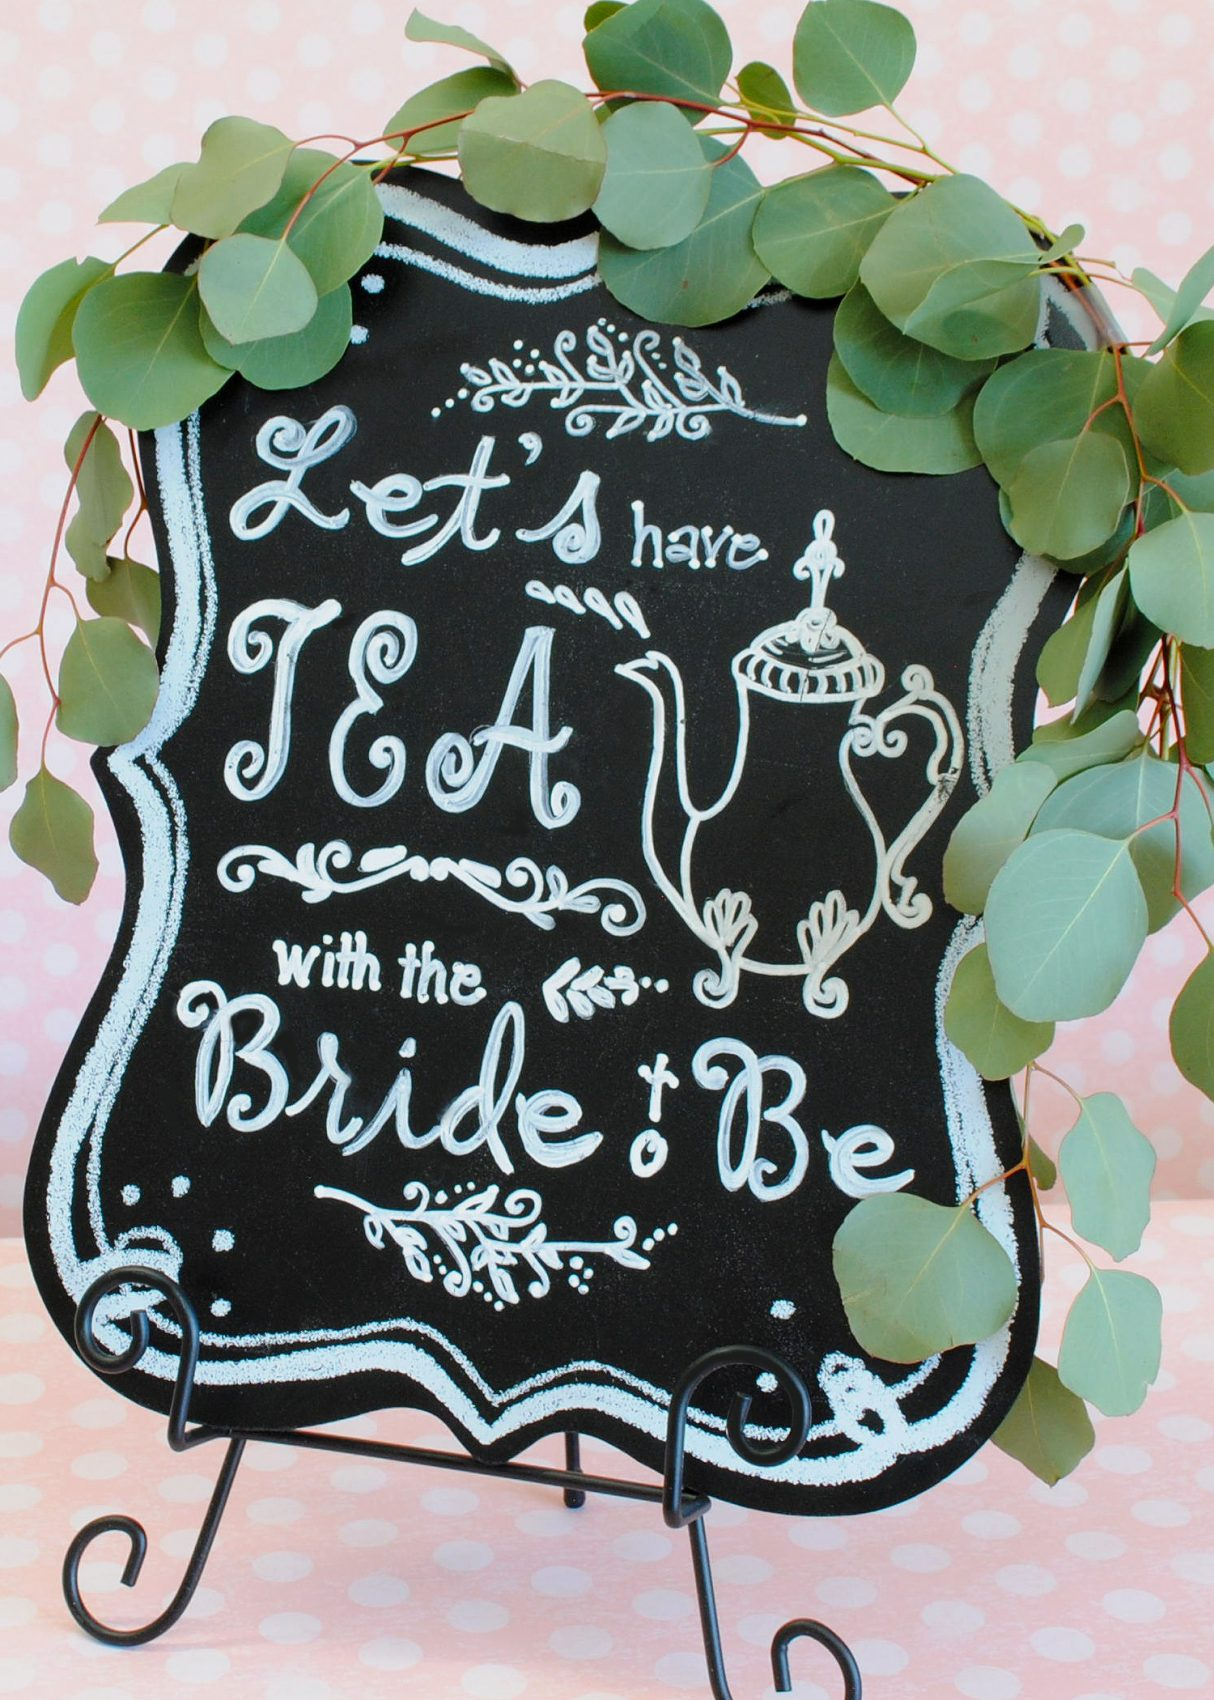 Diy Chalkboard Sign: Let's Have Tea With The Bride-To-Be